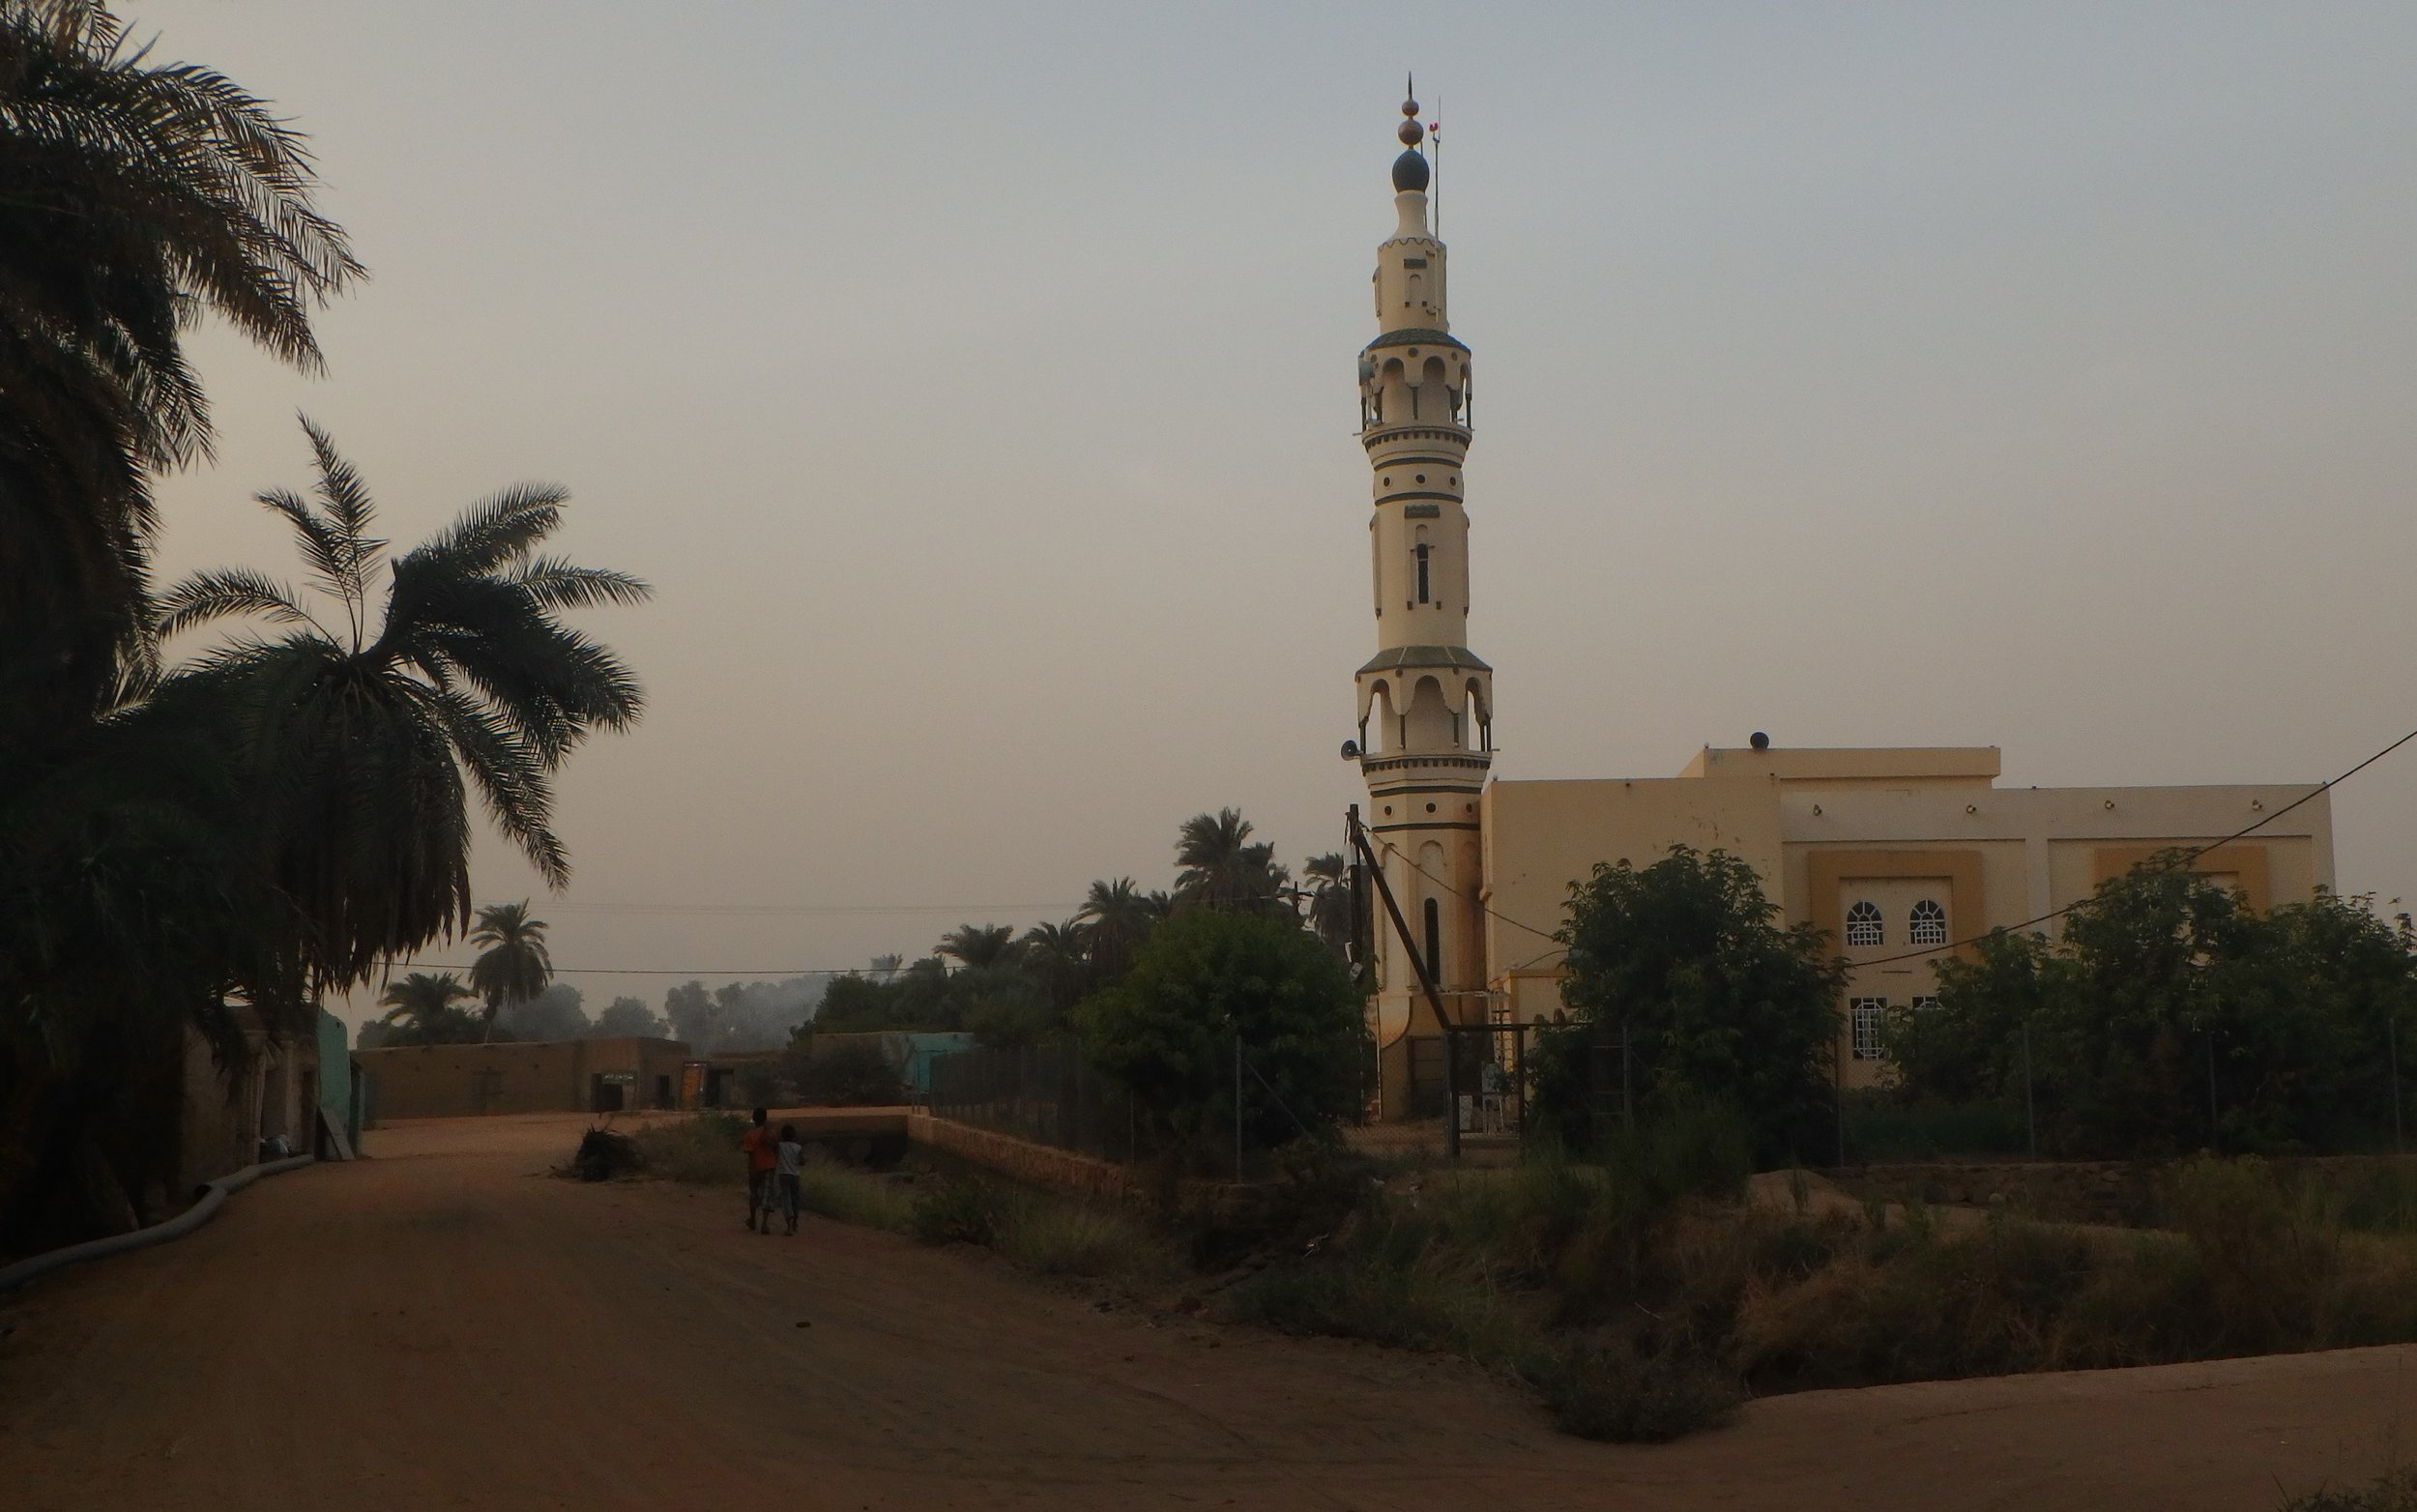 A mosque on the banks of the Nile across from Karima.